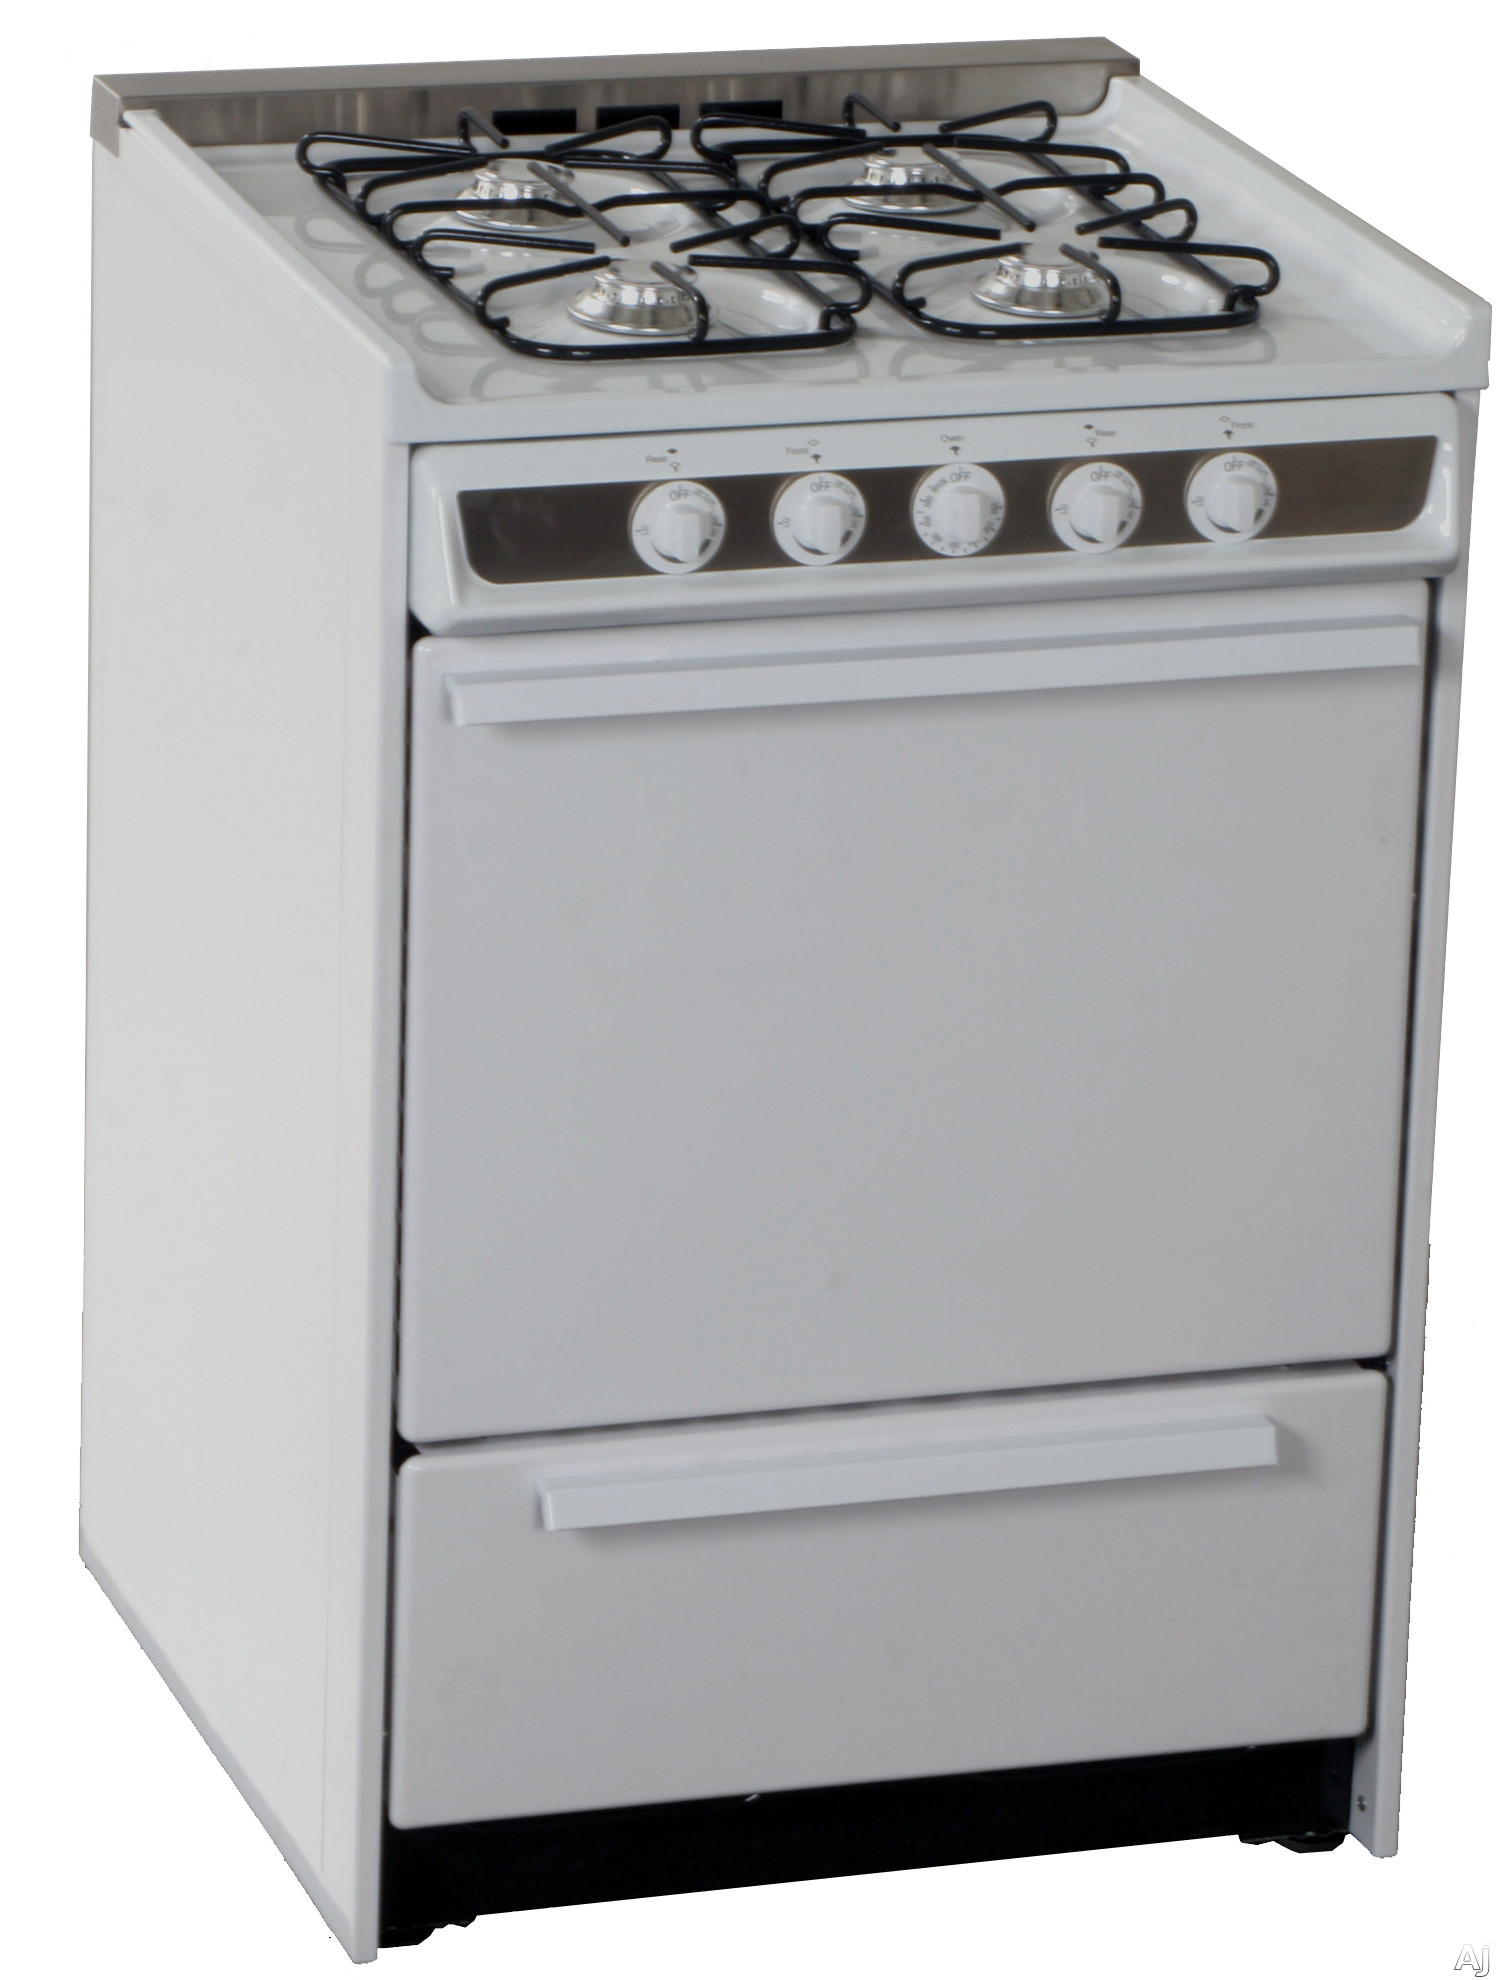 New stuff all time summit professional series wm616r 24 slide in gas range with manual clean - Clean gas range keep looking new ...